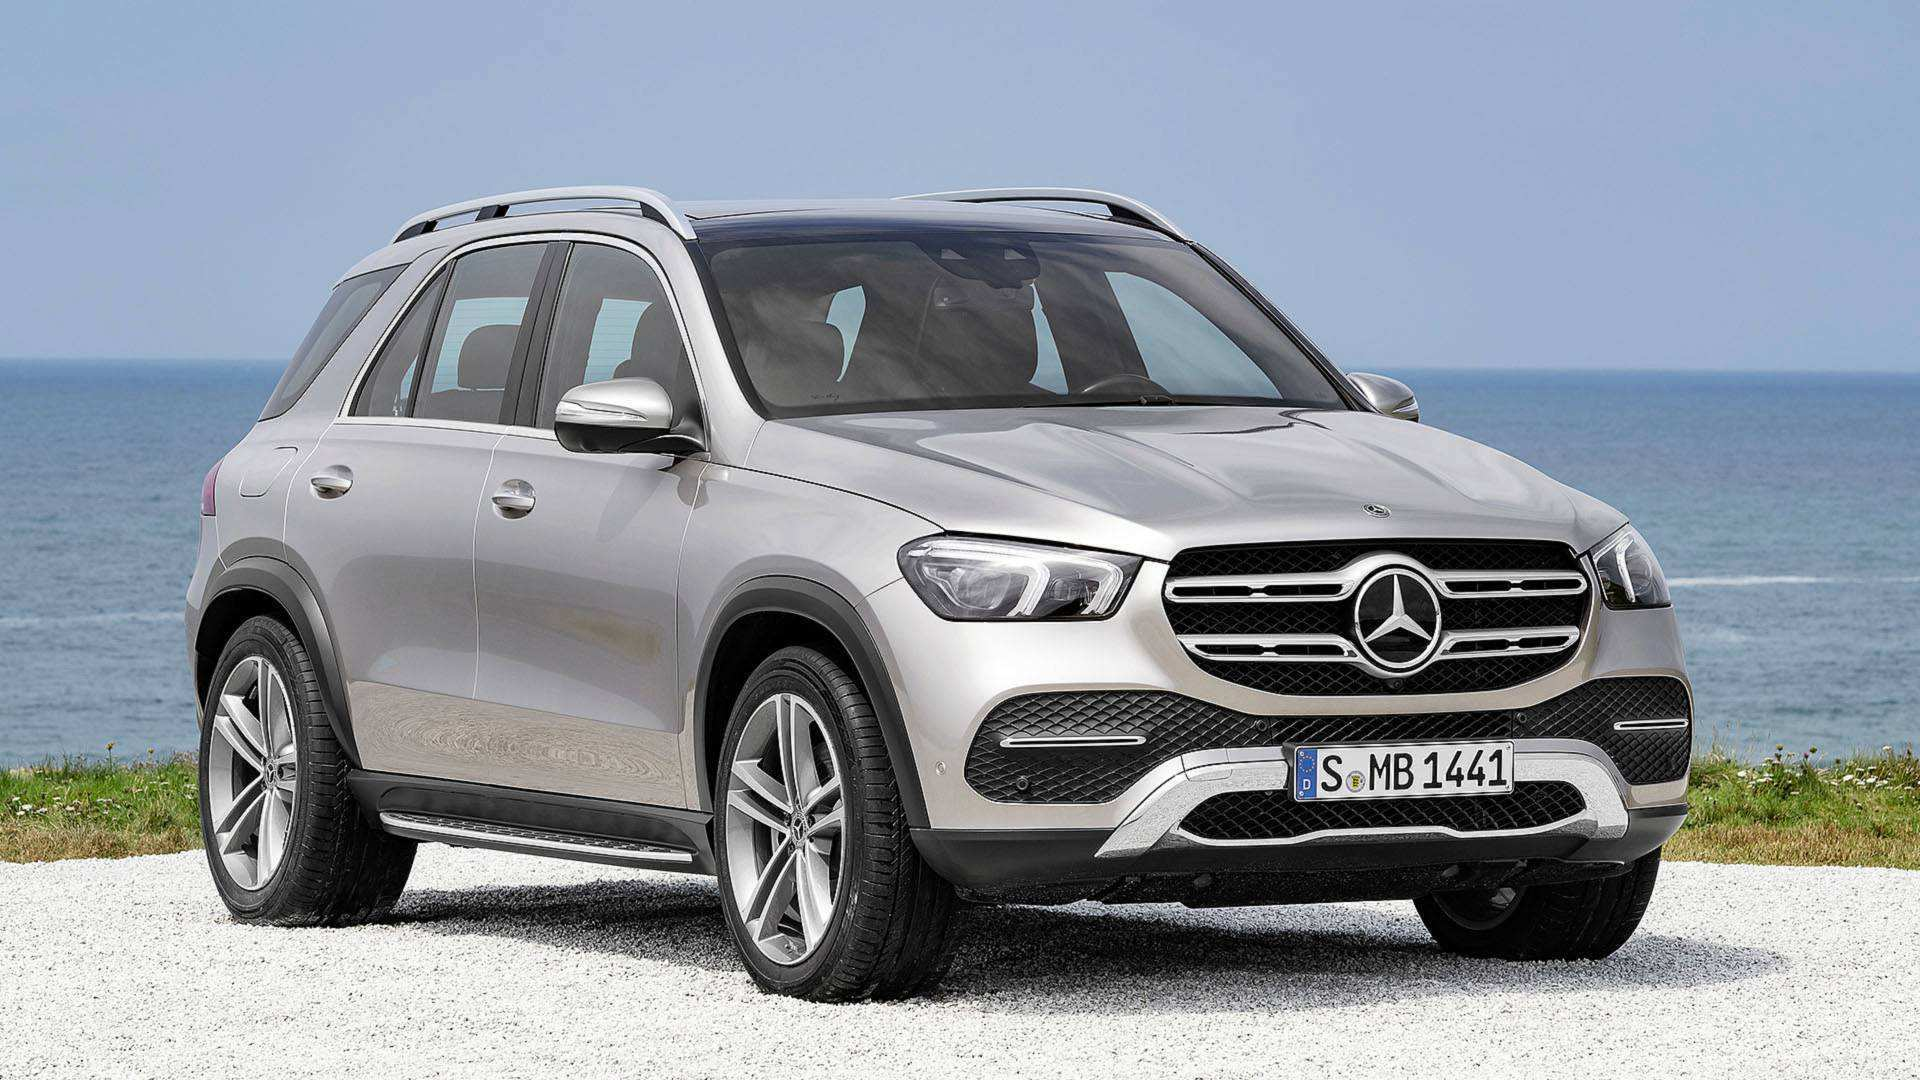 83 All New 2020 Gle 350 Vs BMW X5 Release with 2020 Gle 350 Vs BMW X5